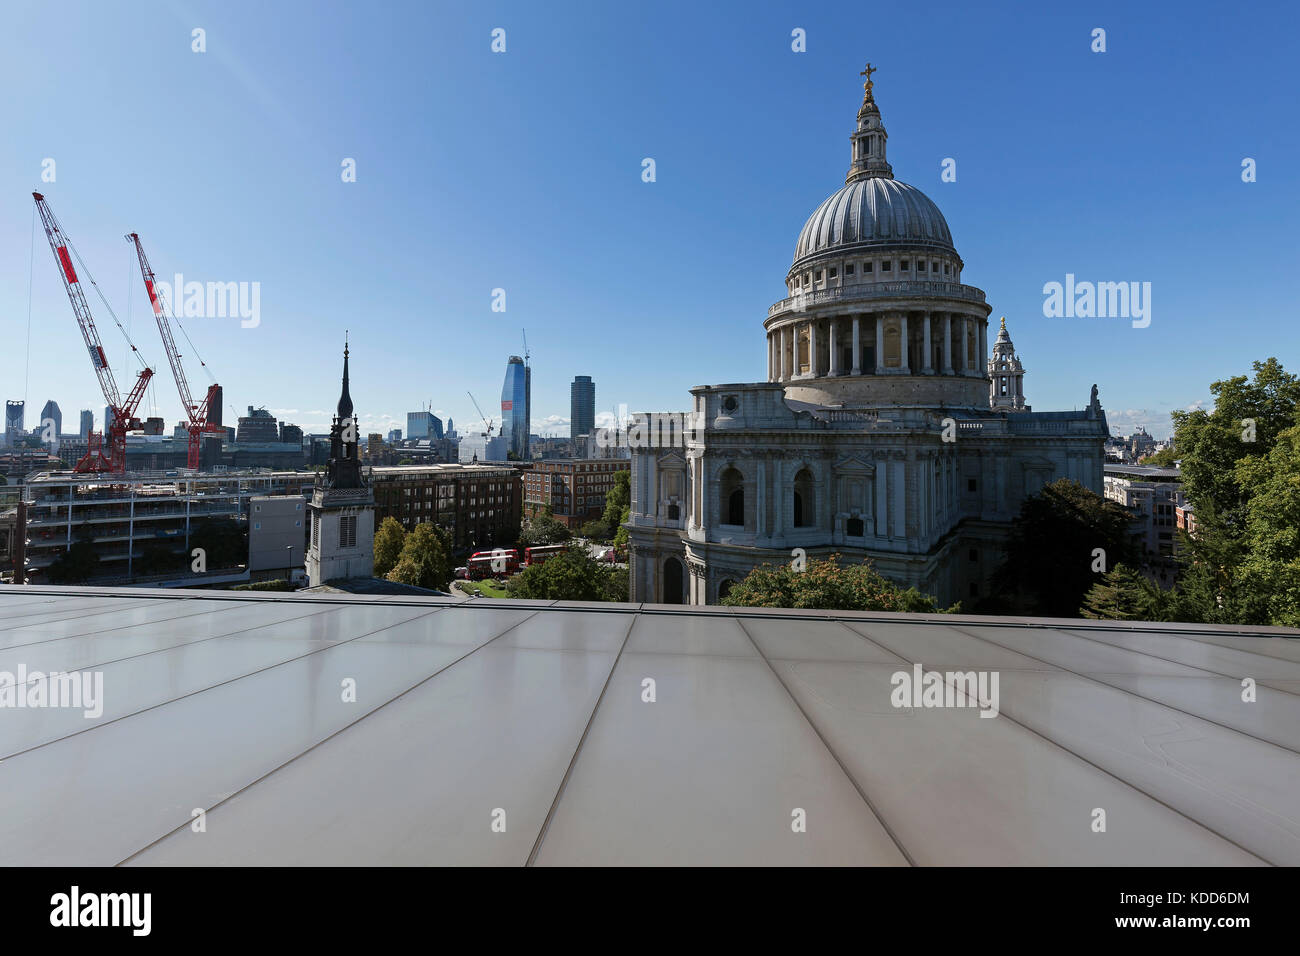 LONDON, ENGLAND - SEPTEMBER 2017; View from the top of the shopping center called One New Change. - Stock Image